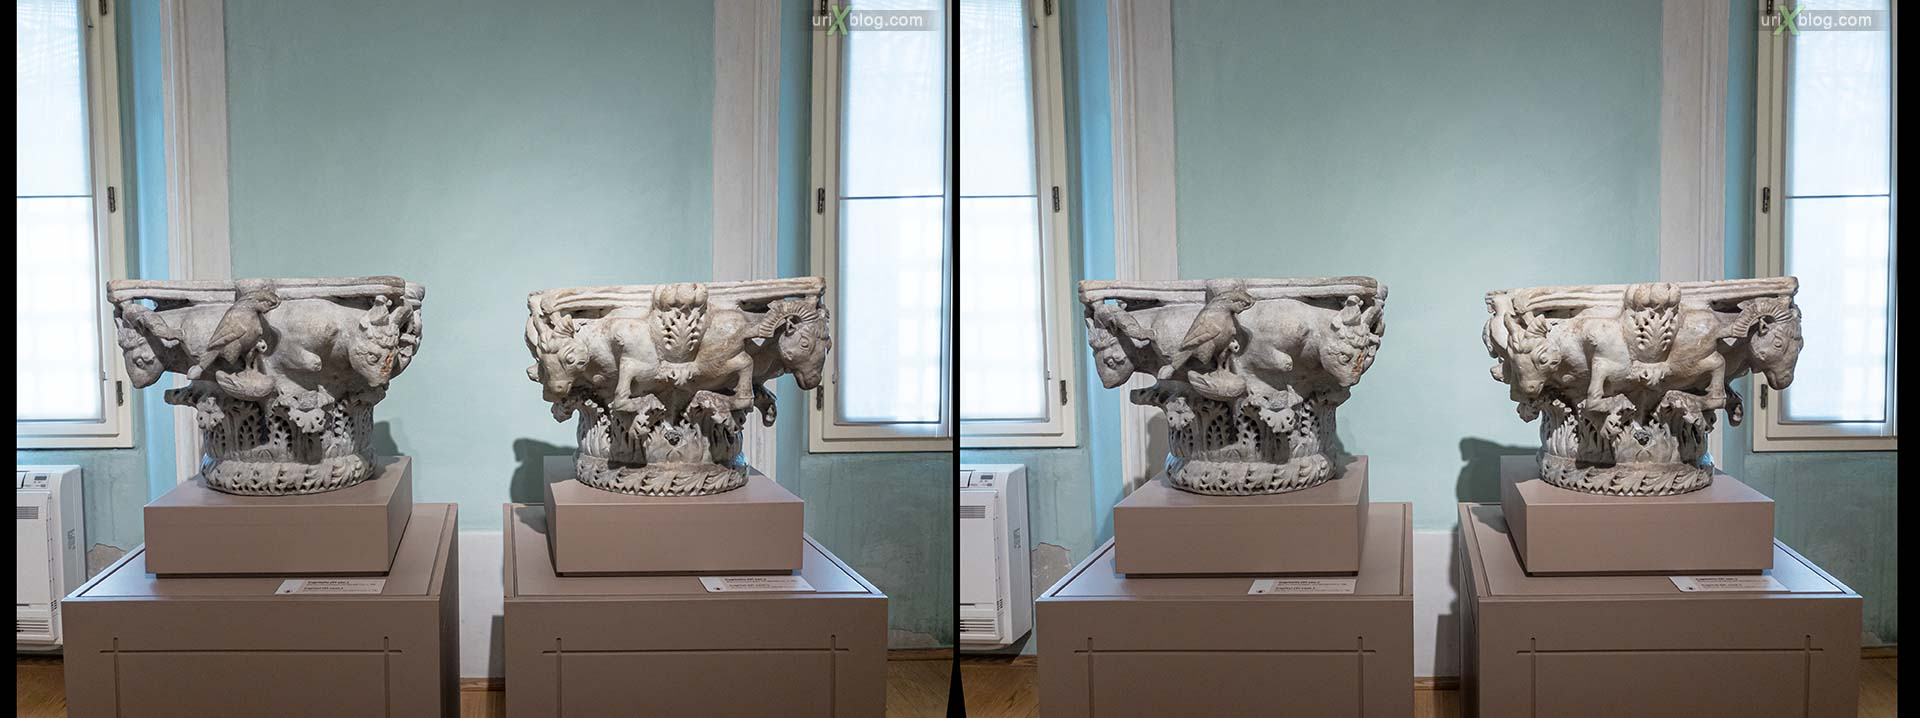 Archiepiscopal Museum, Ravenna, Italy, 3D, stereo pair, cross-eyed, crossview, cross view stereo pair, stereoscopic